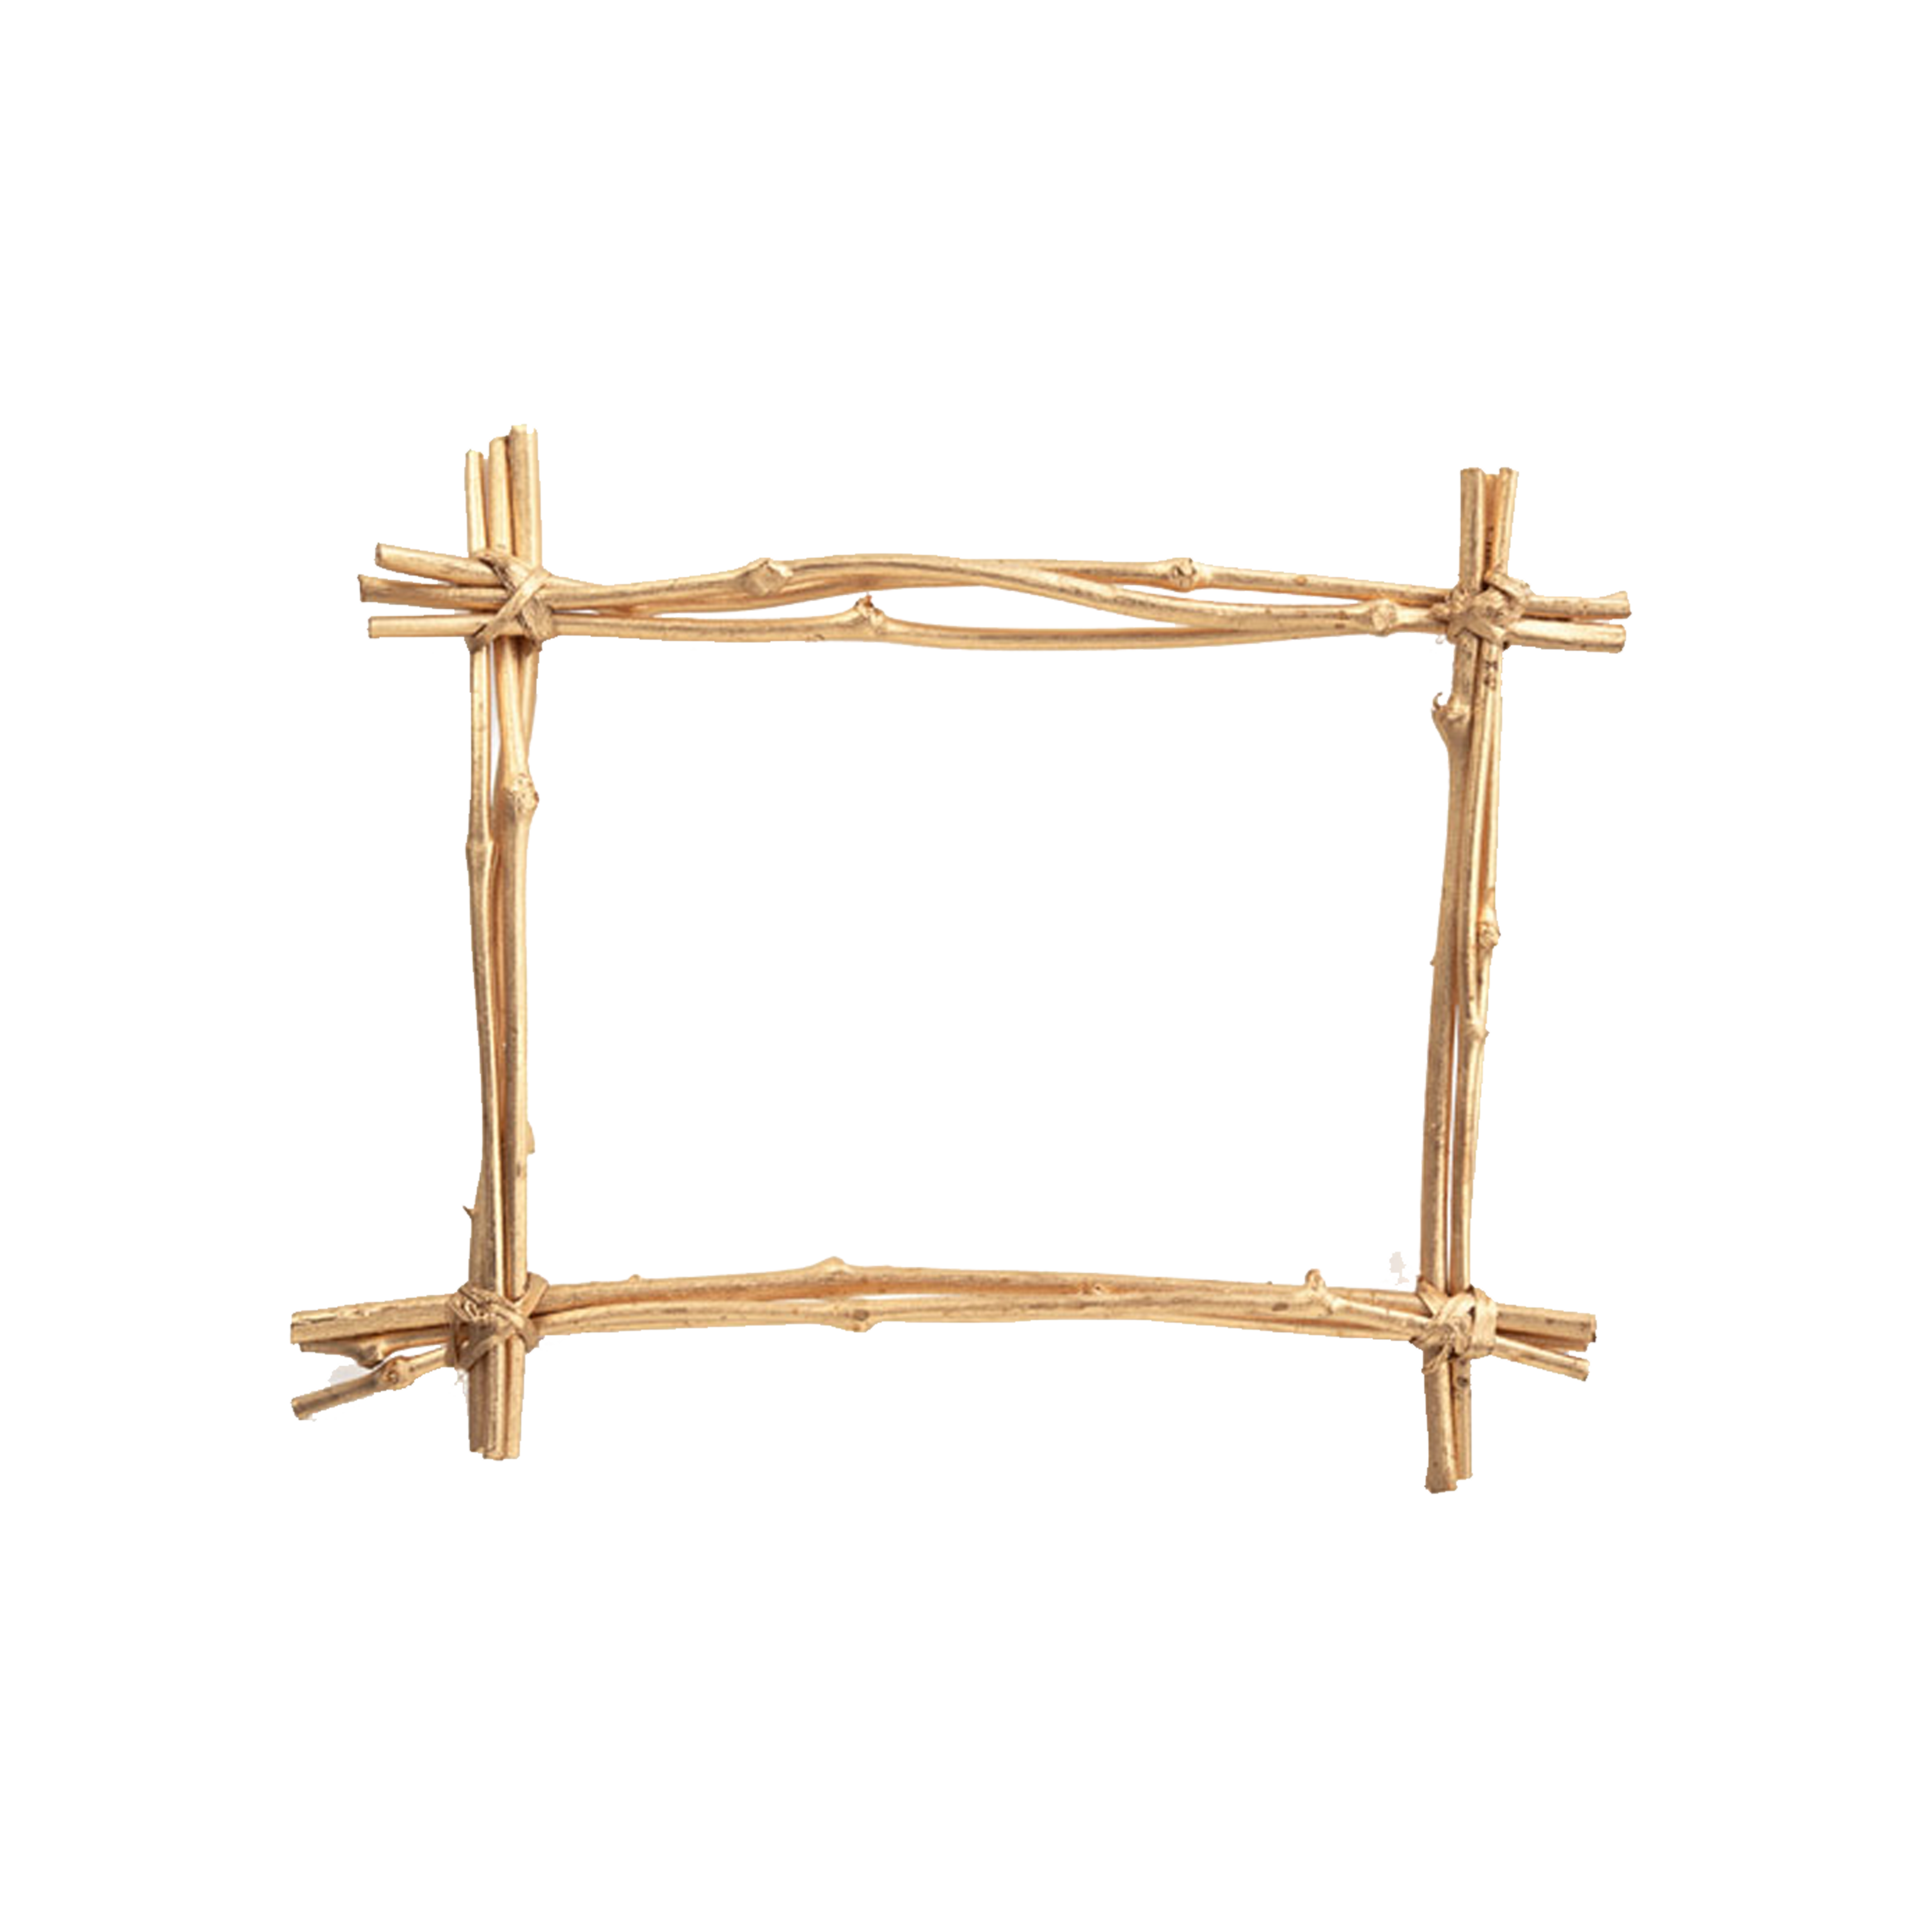 Bamboo border png. Picture frame clip art